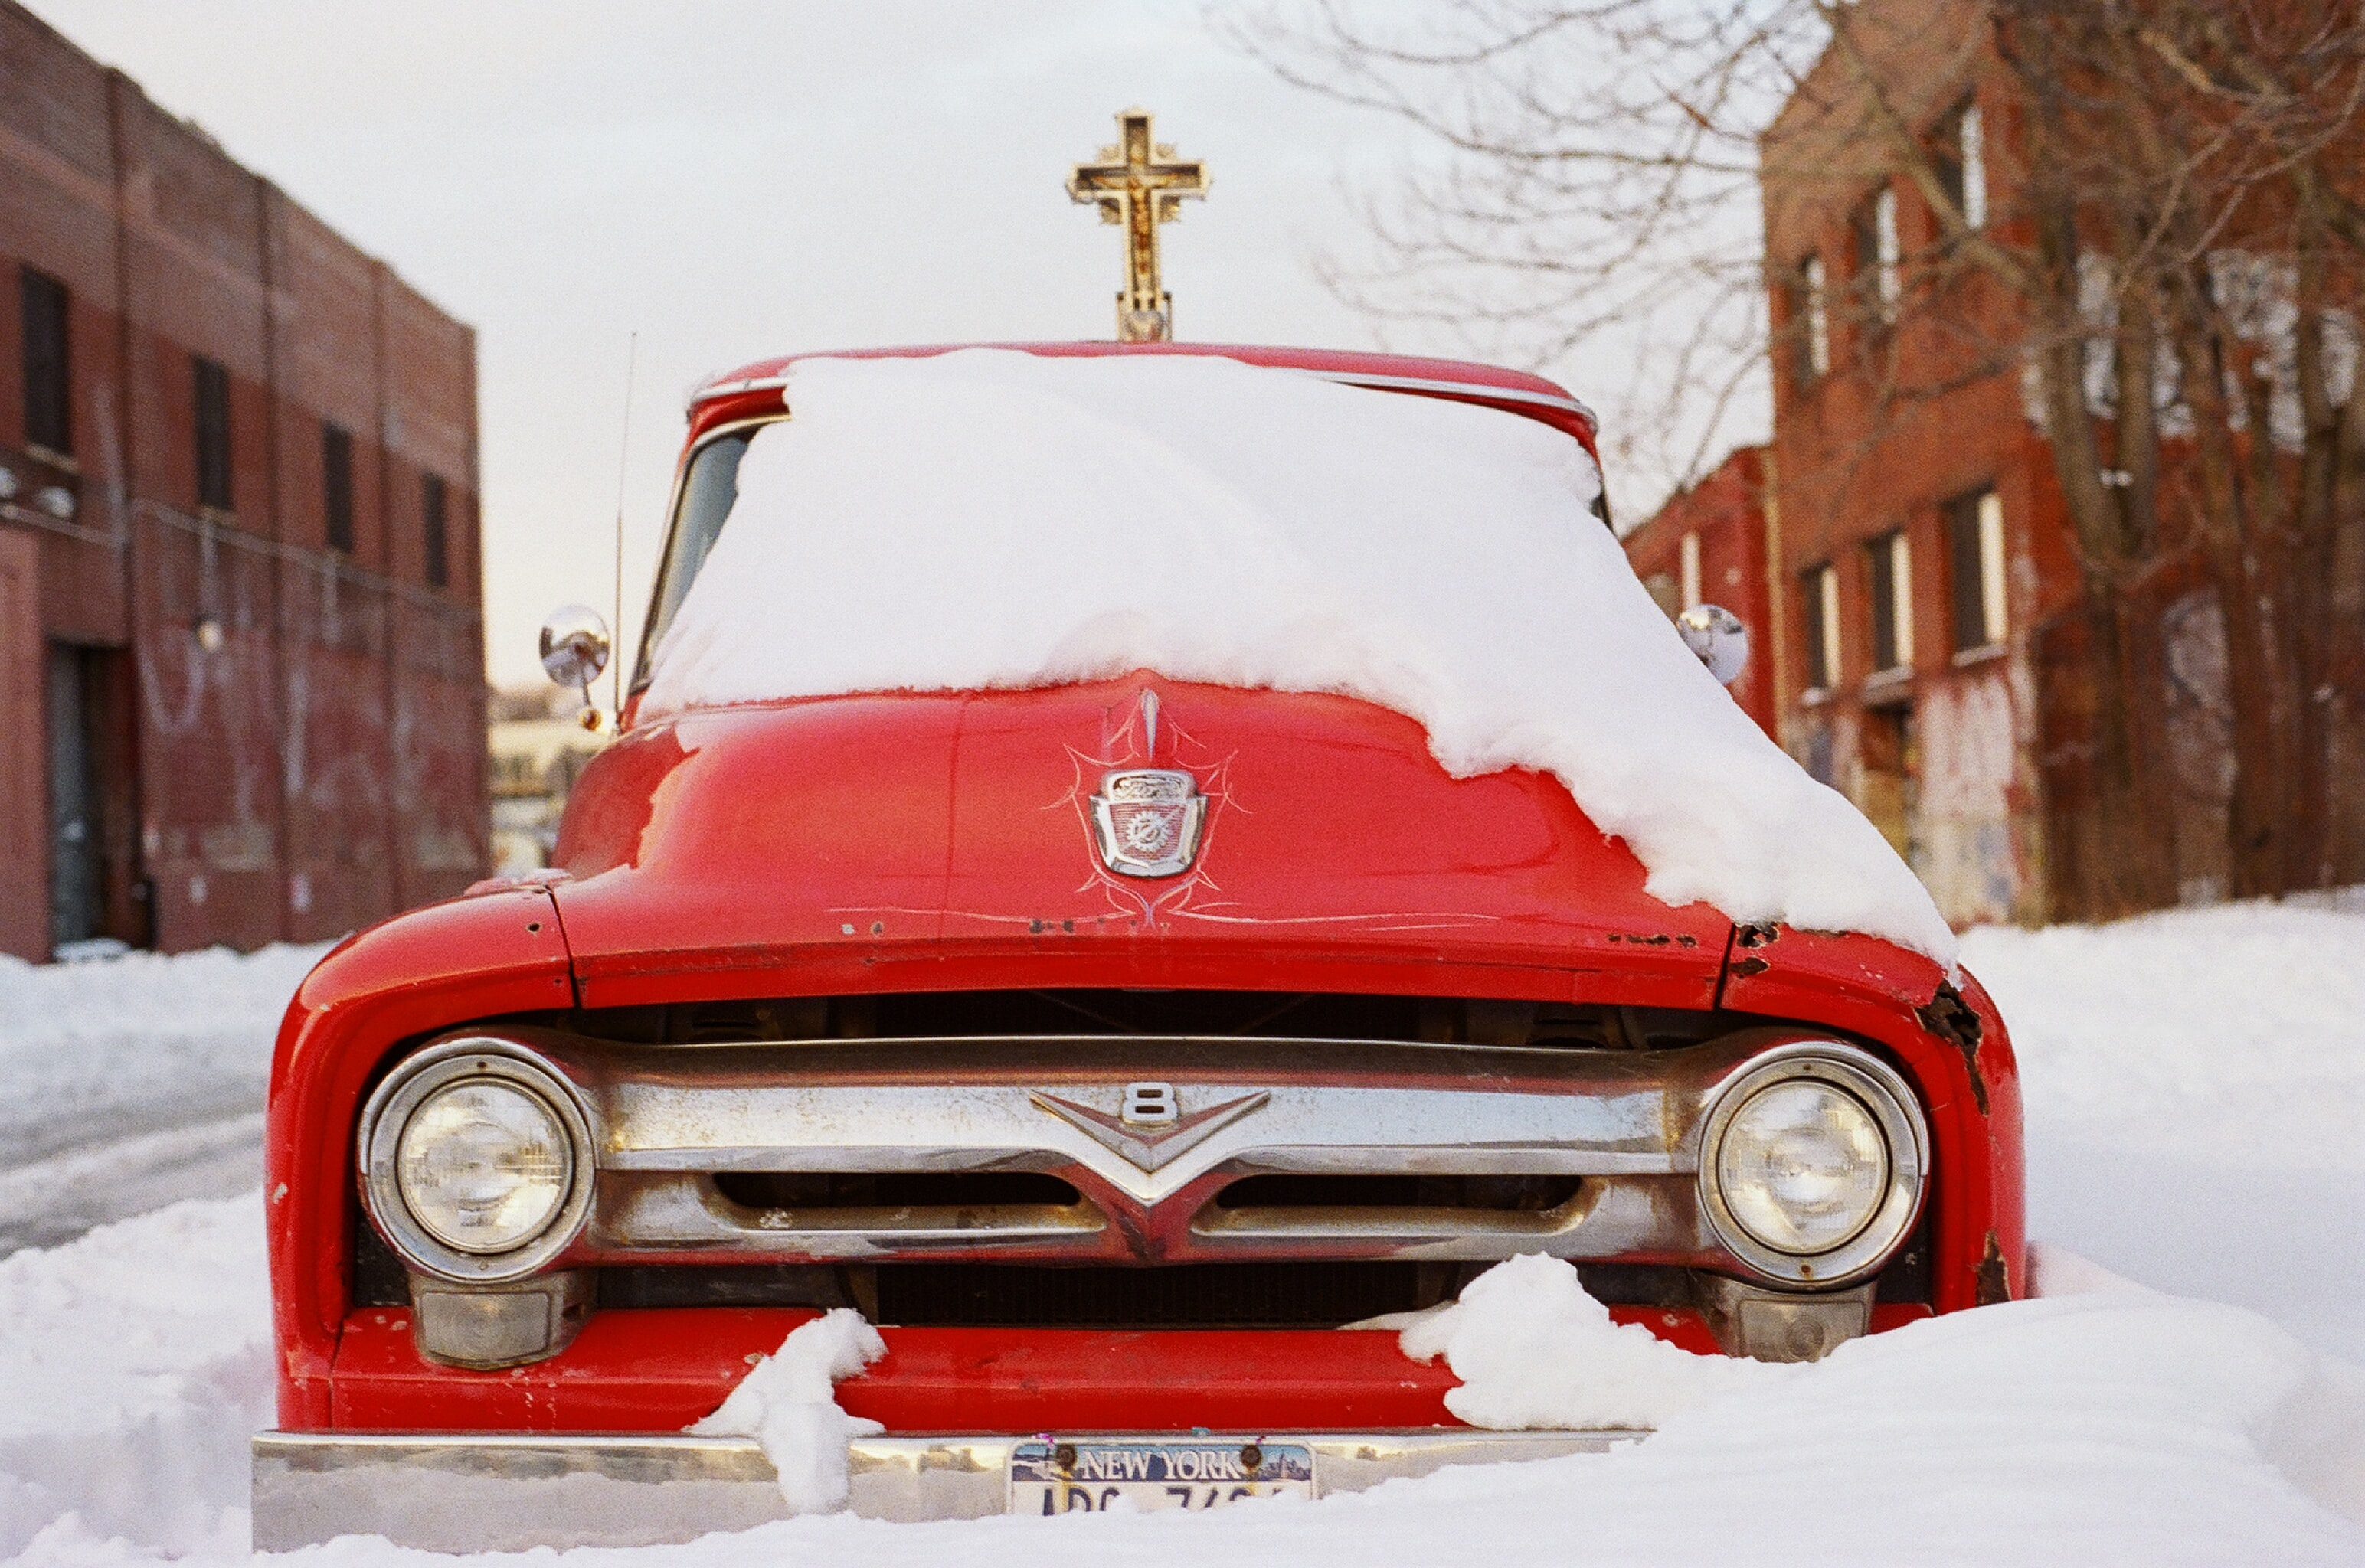 red vehicle surrounded by snowy field beside brown concrete buildings during daytime